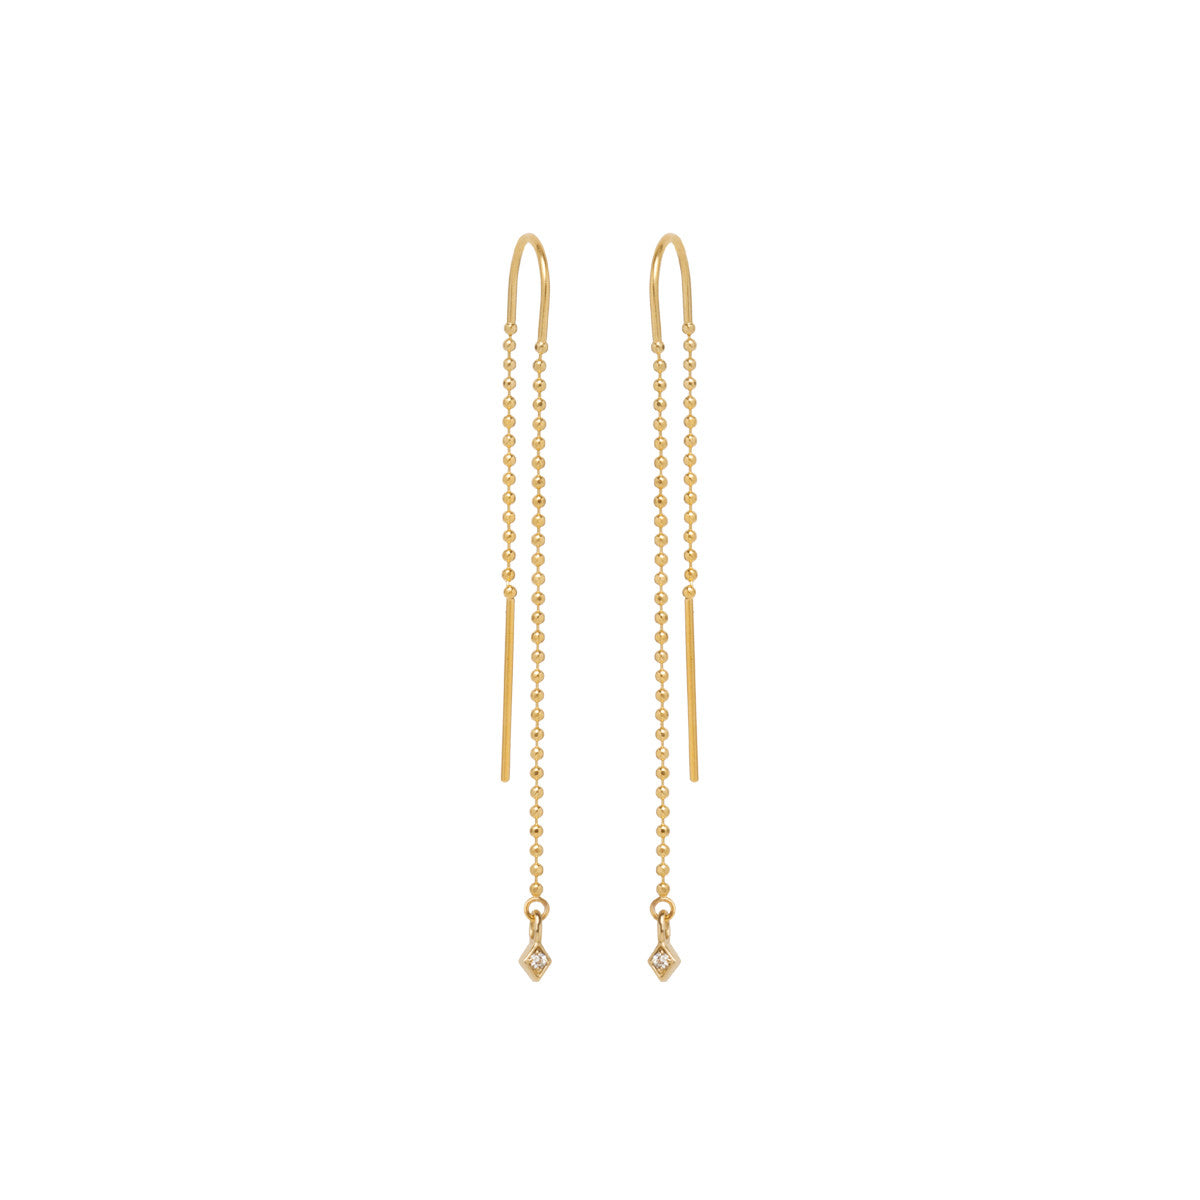 14k diamond kite bead chain threaders